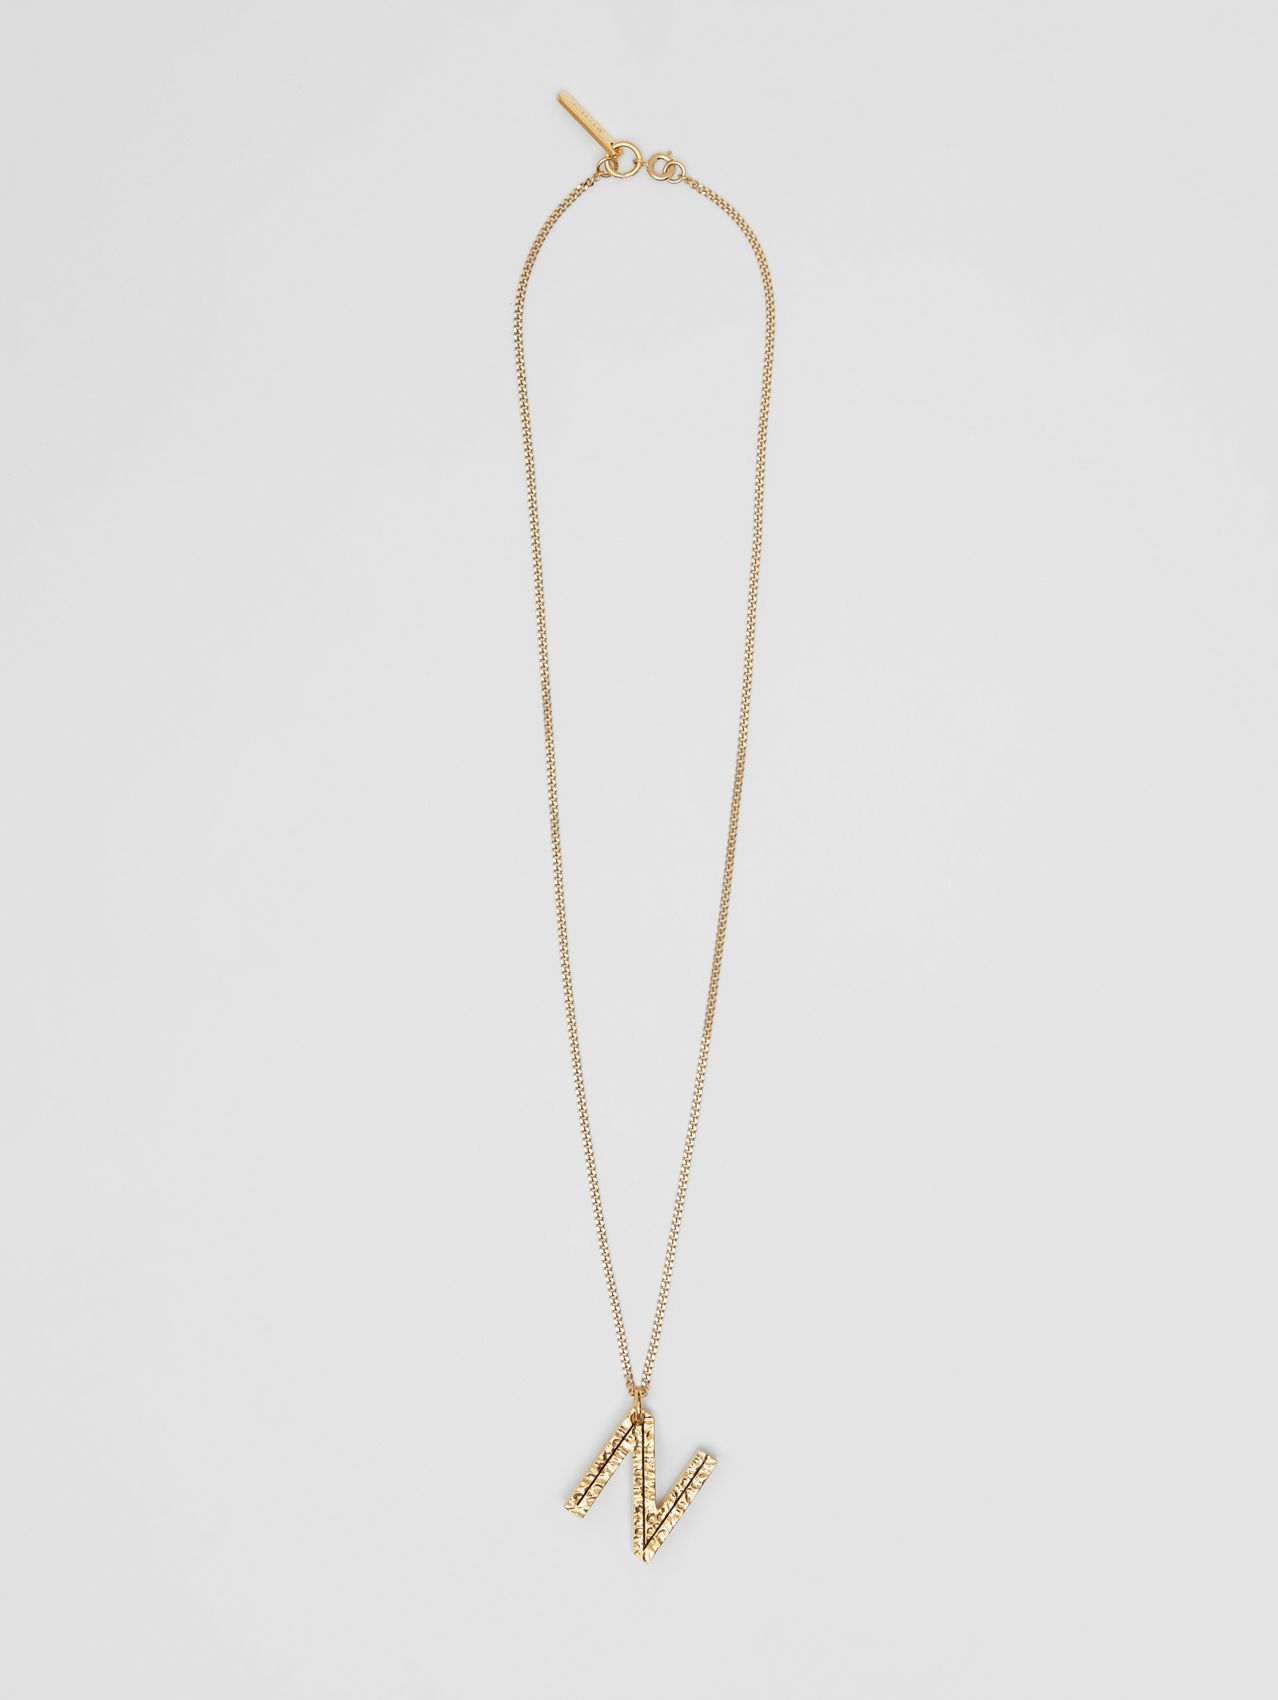 'N' Alphabet Charm Gold-plated Necklace in Light